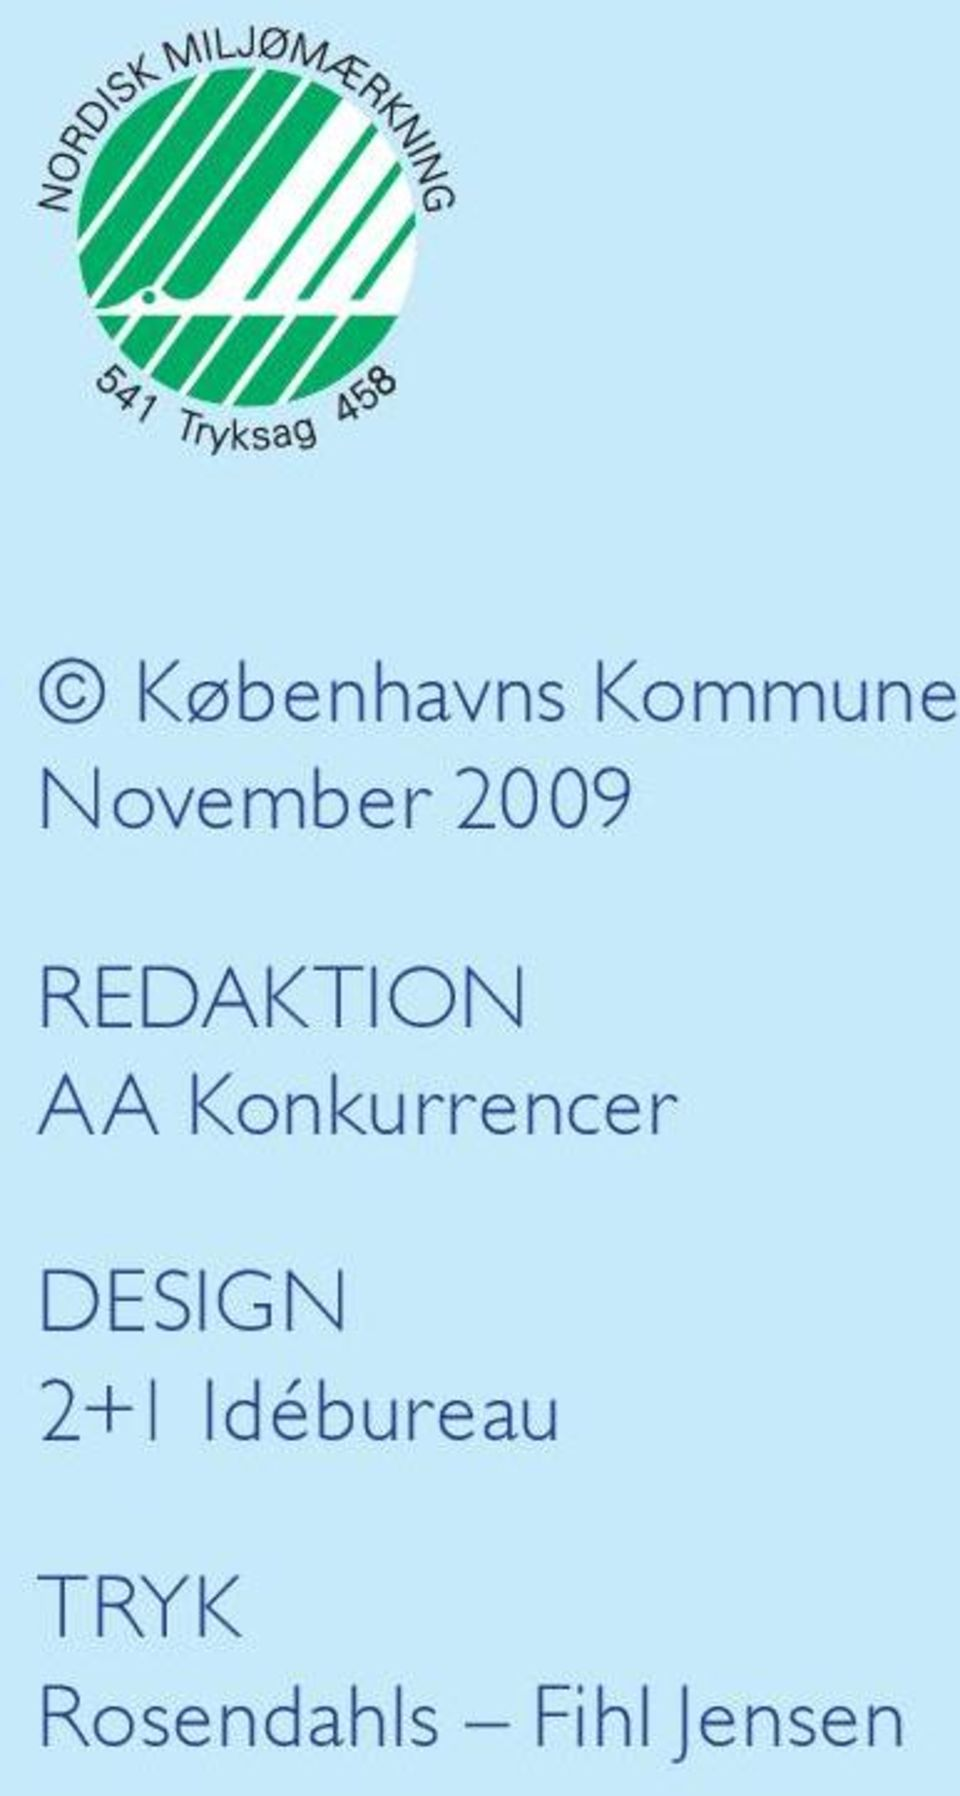 Konkurrencer Design 2+1